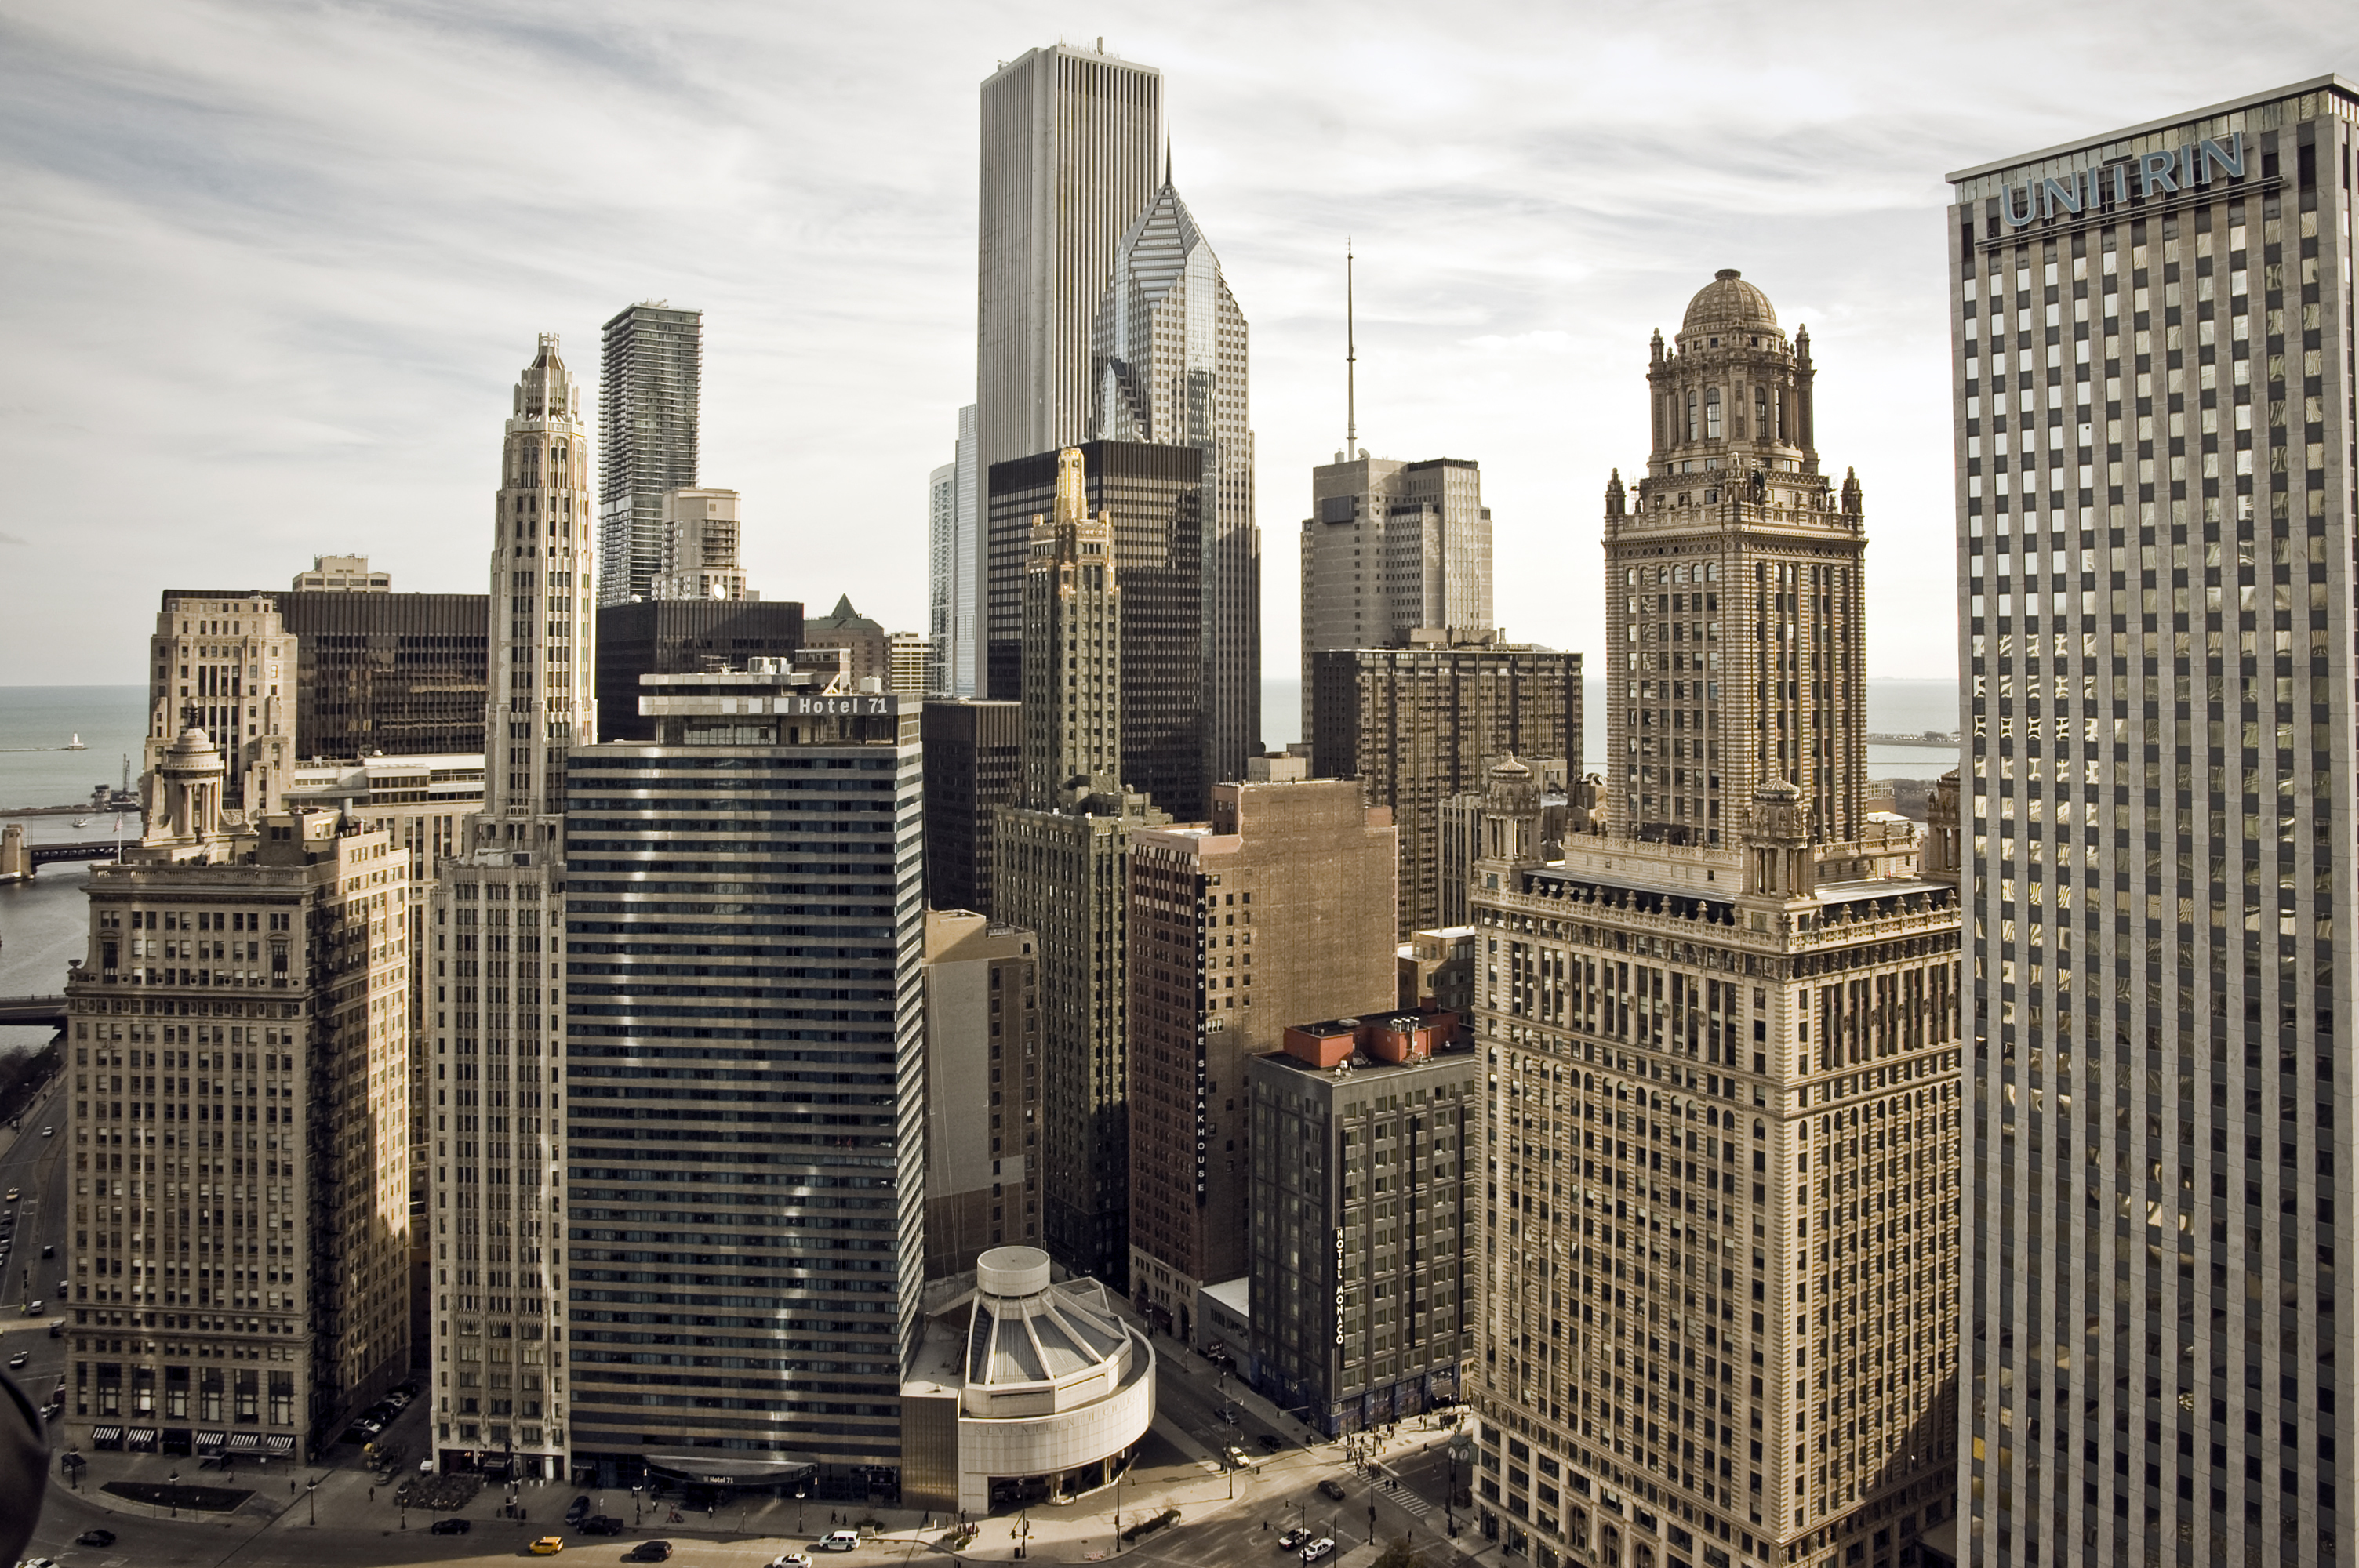 city building. Chicago Illinois City Skyscrapers Buildings Wallpaper 3008x2000 Enchanting Building Gallery  Best inspiration home design